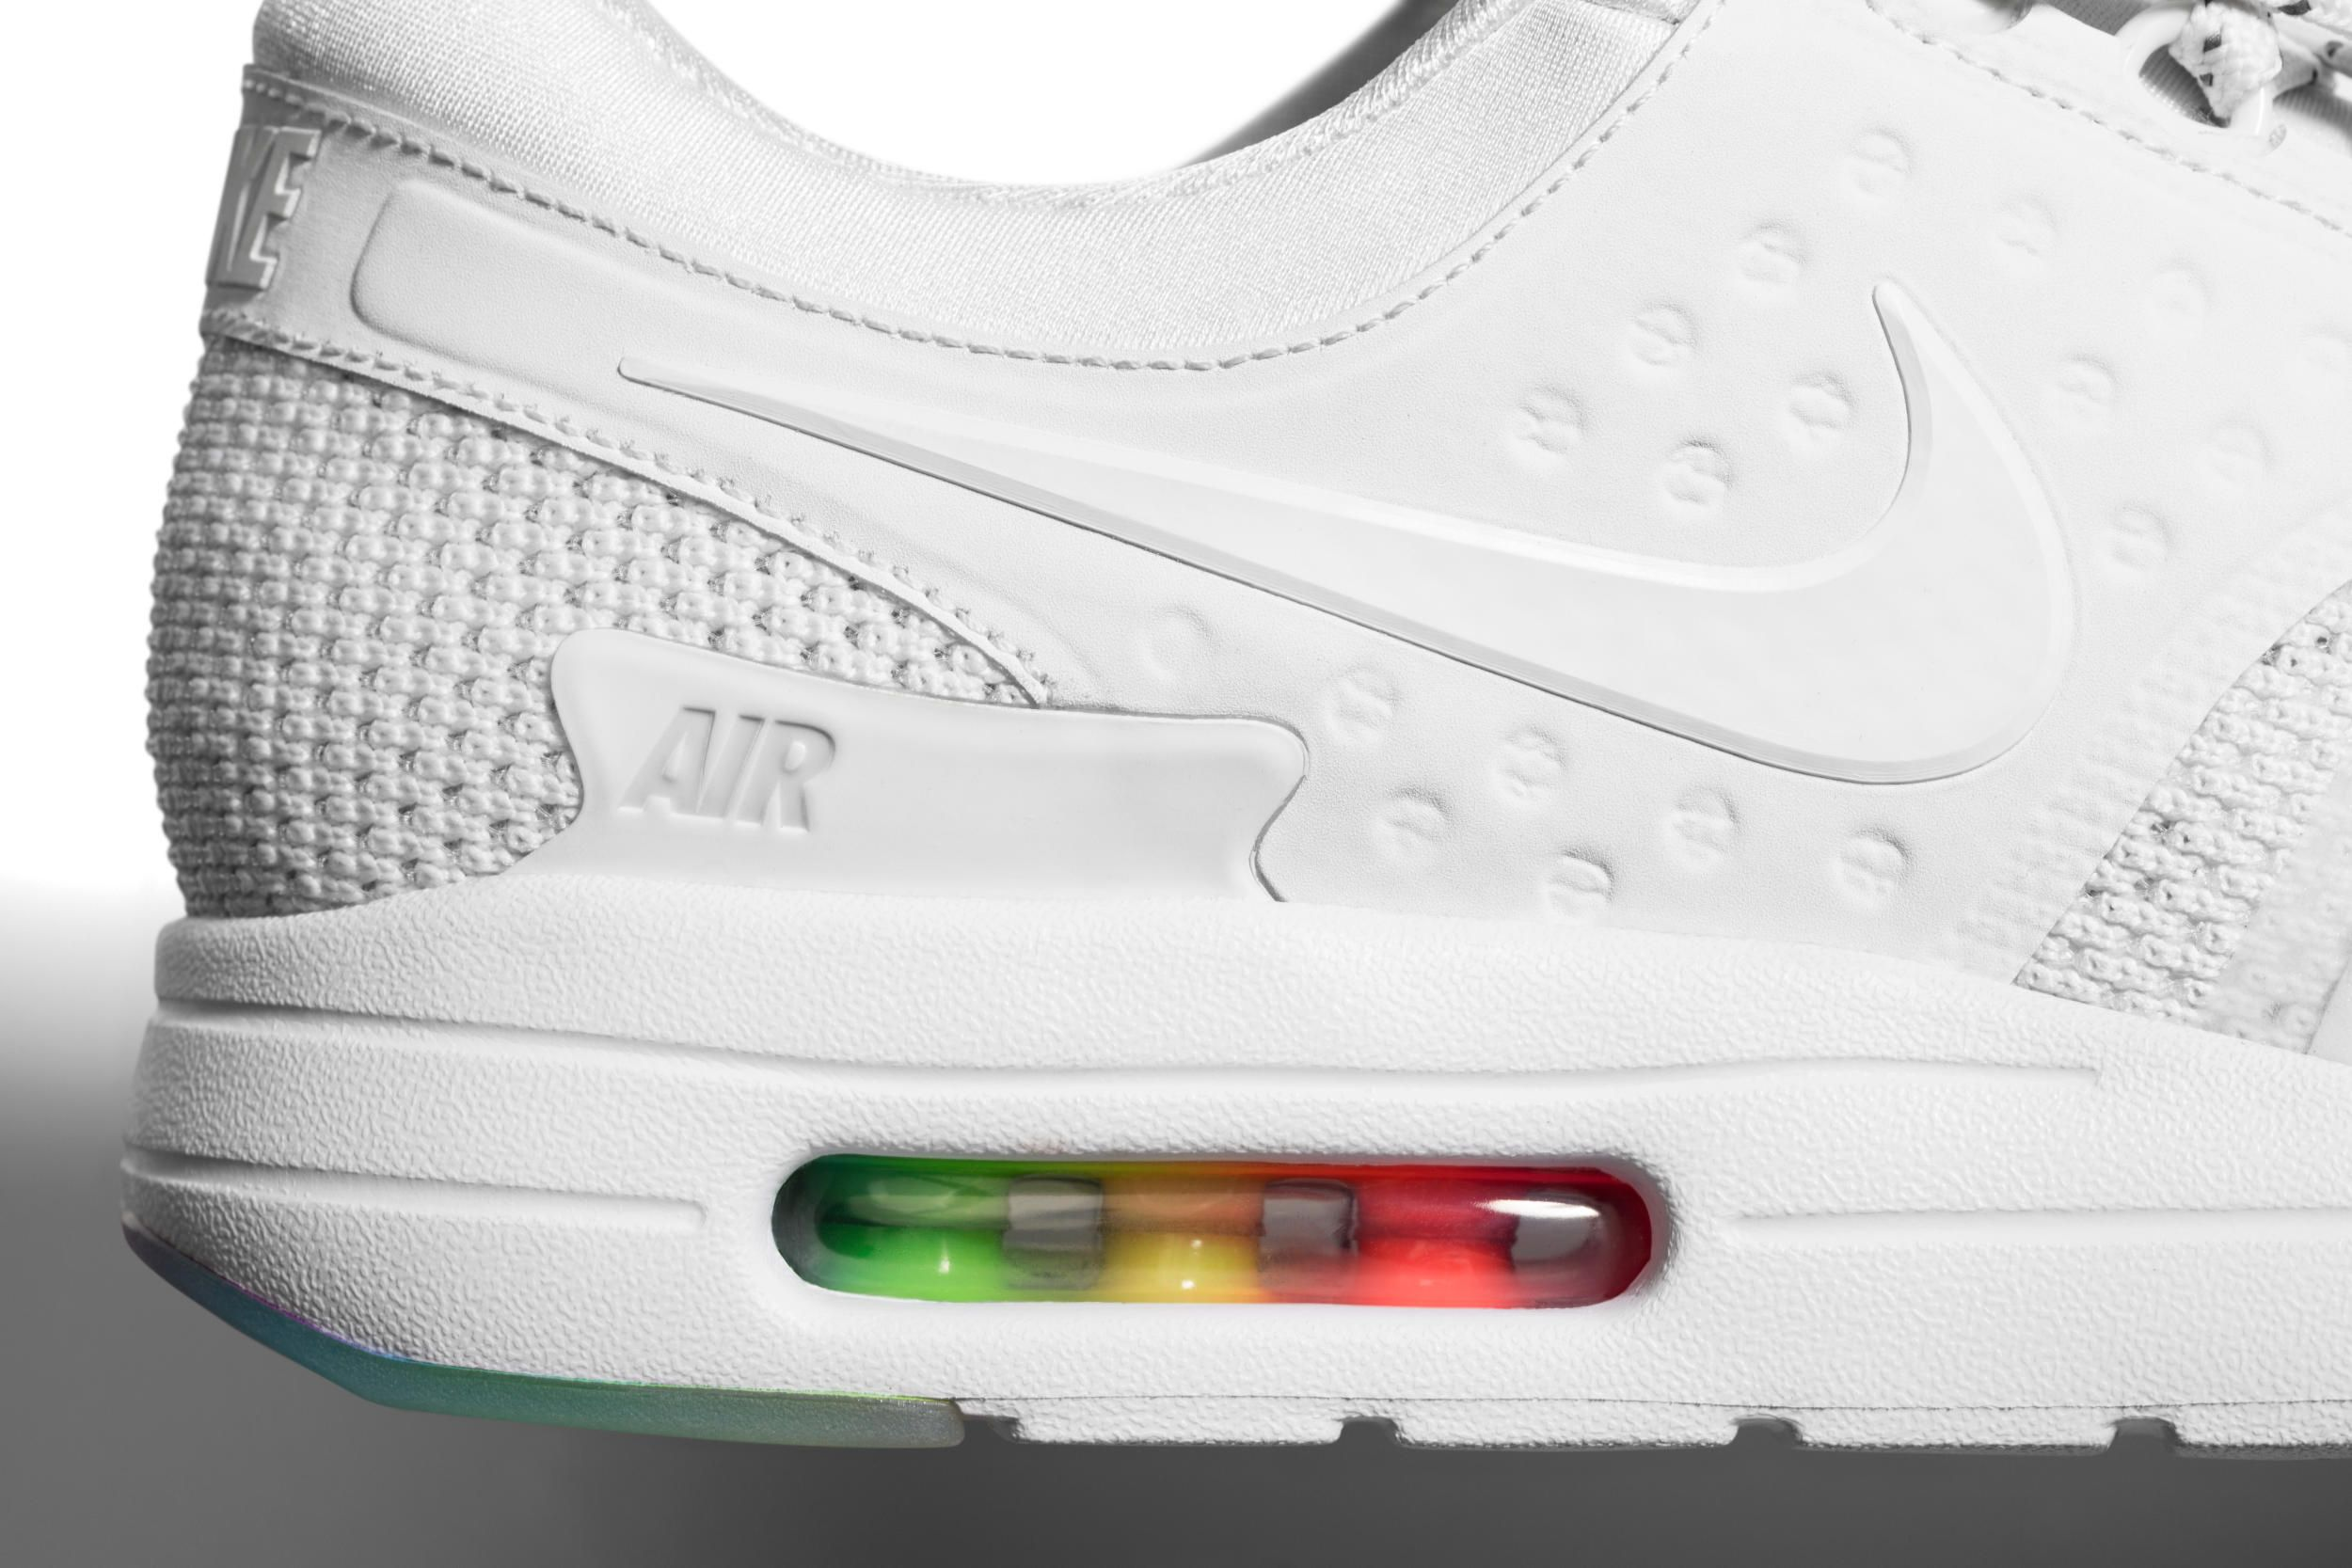 Nike's 2016 BETRUE collection honors diversity in sports and the global LGBT community